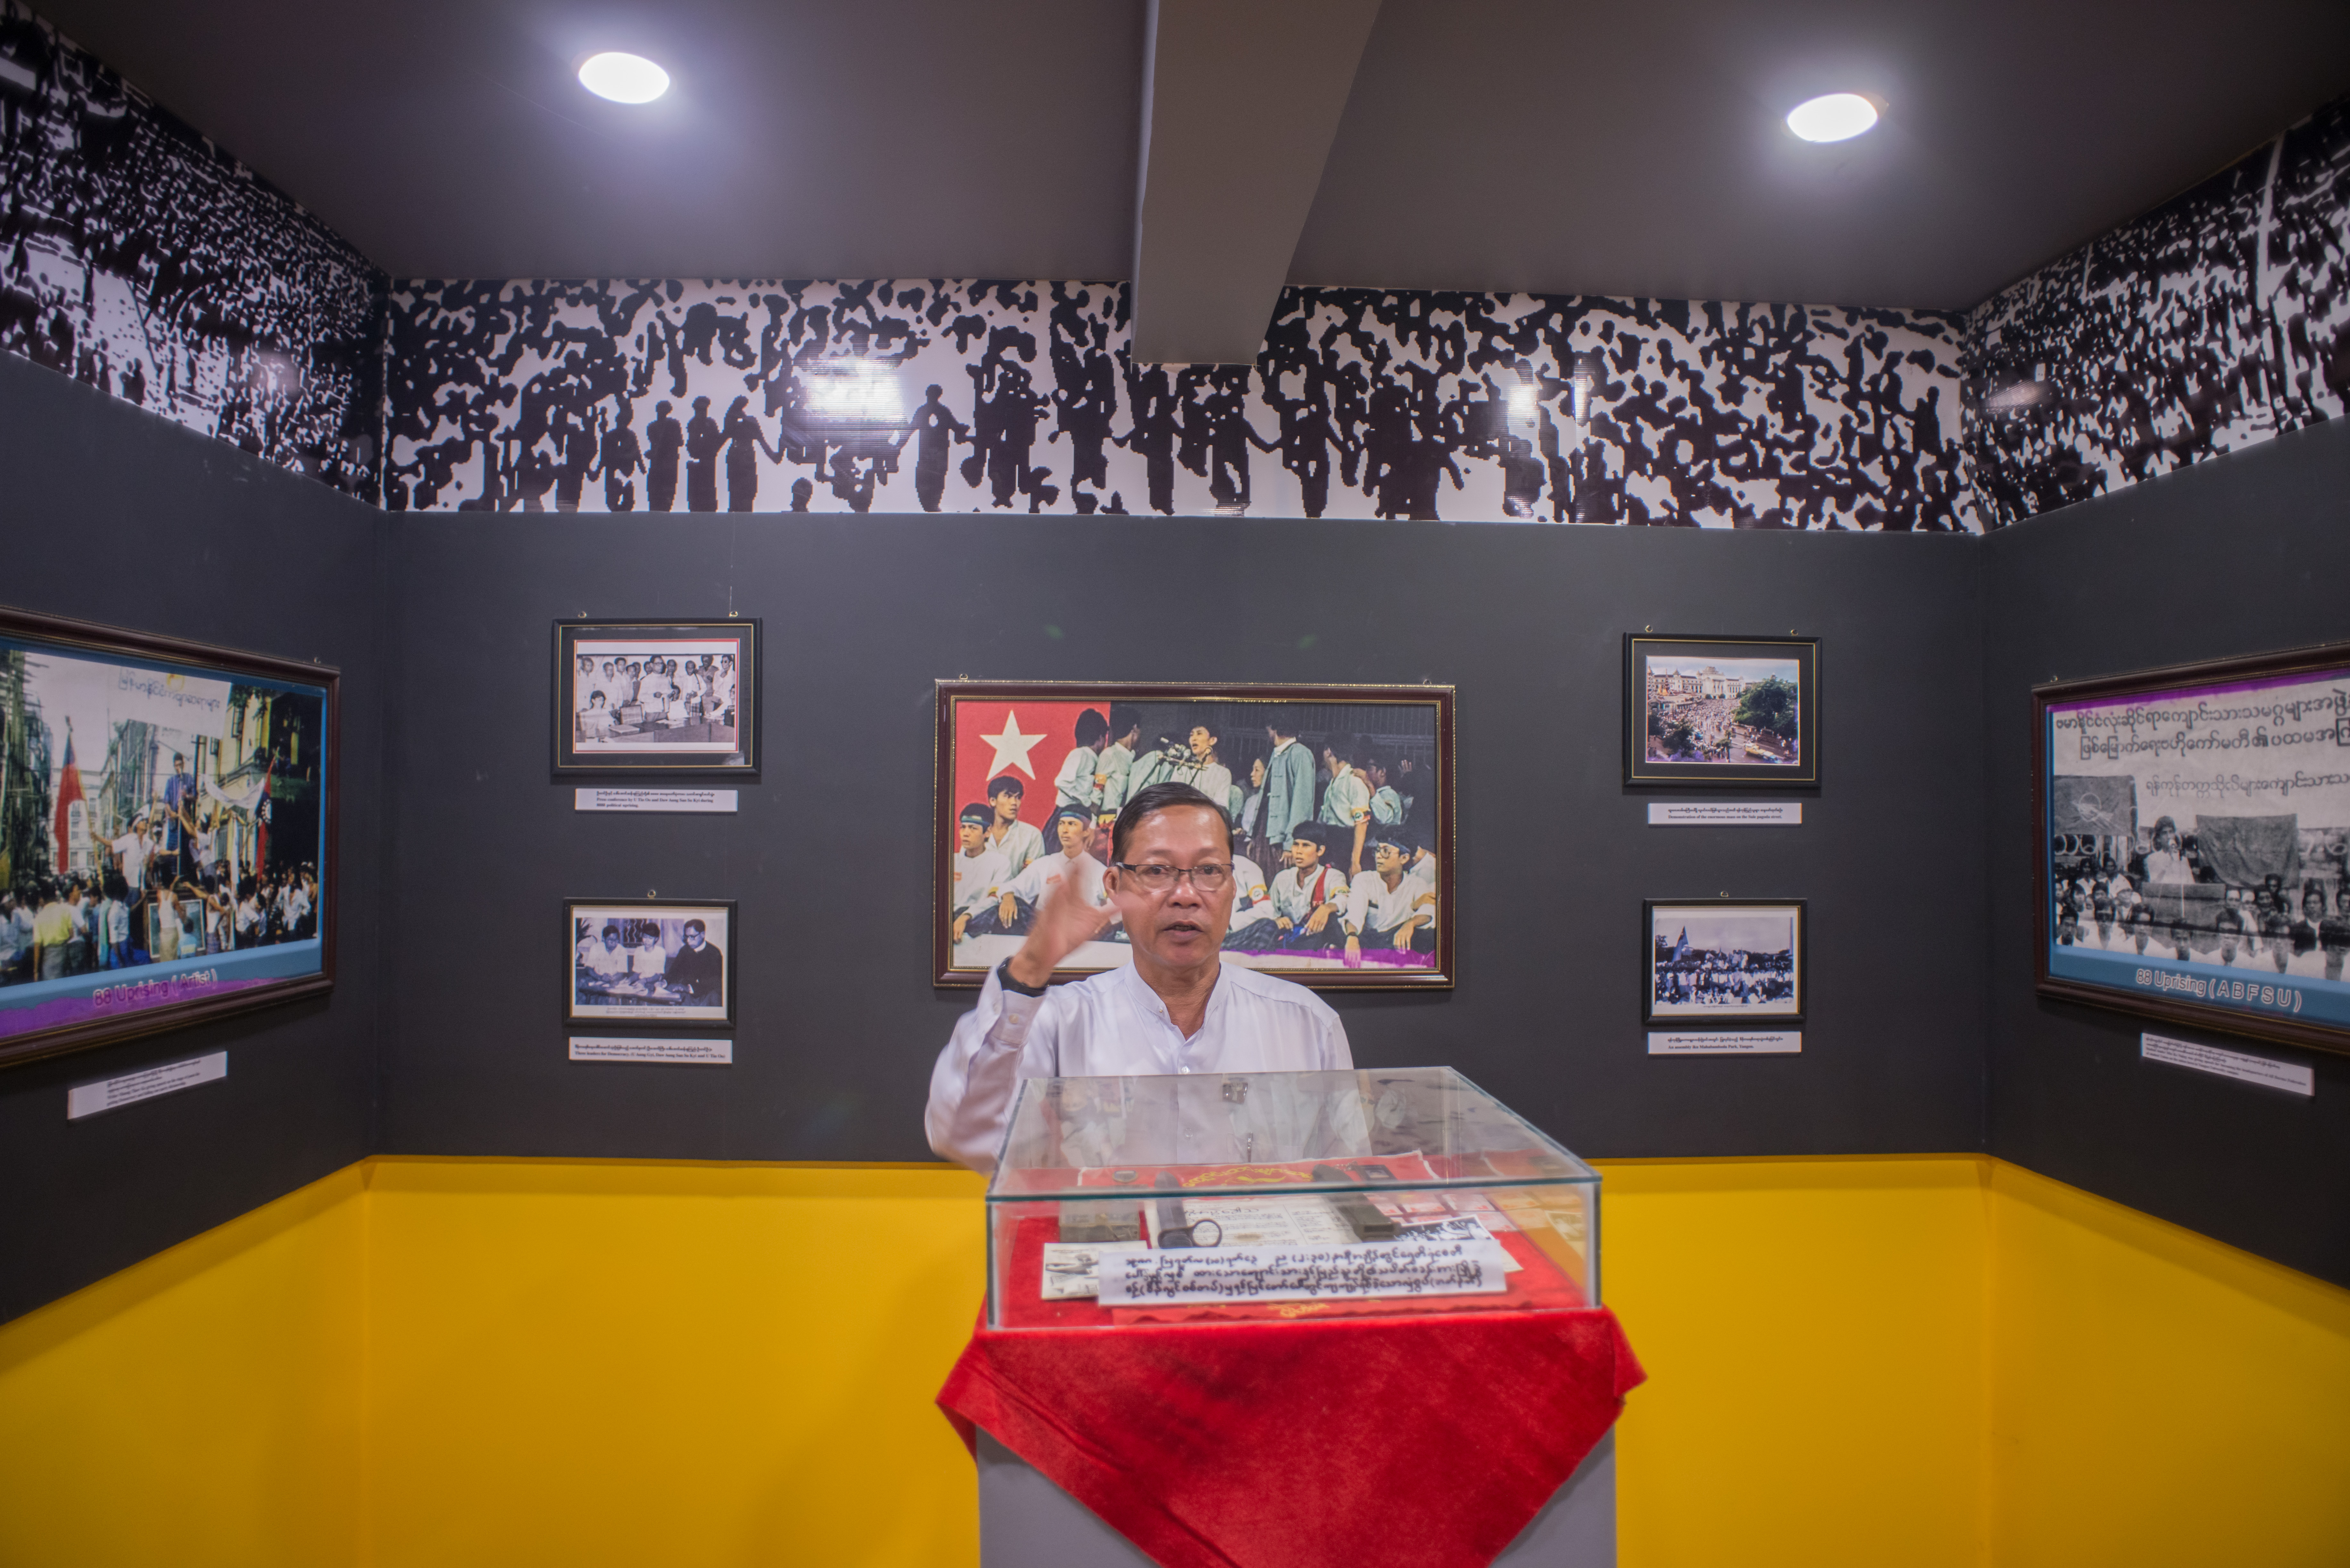 Former student activist Aung Maw speaks to visitors at the 88 Memorial Hall in Rangoon, Burma, on June 3, 2016